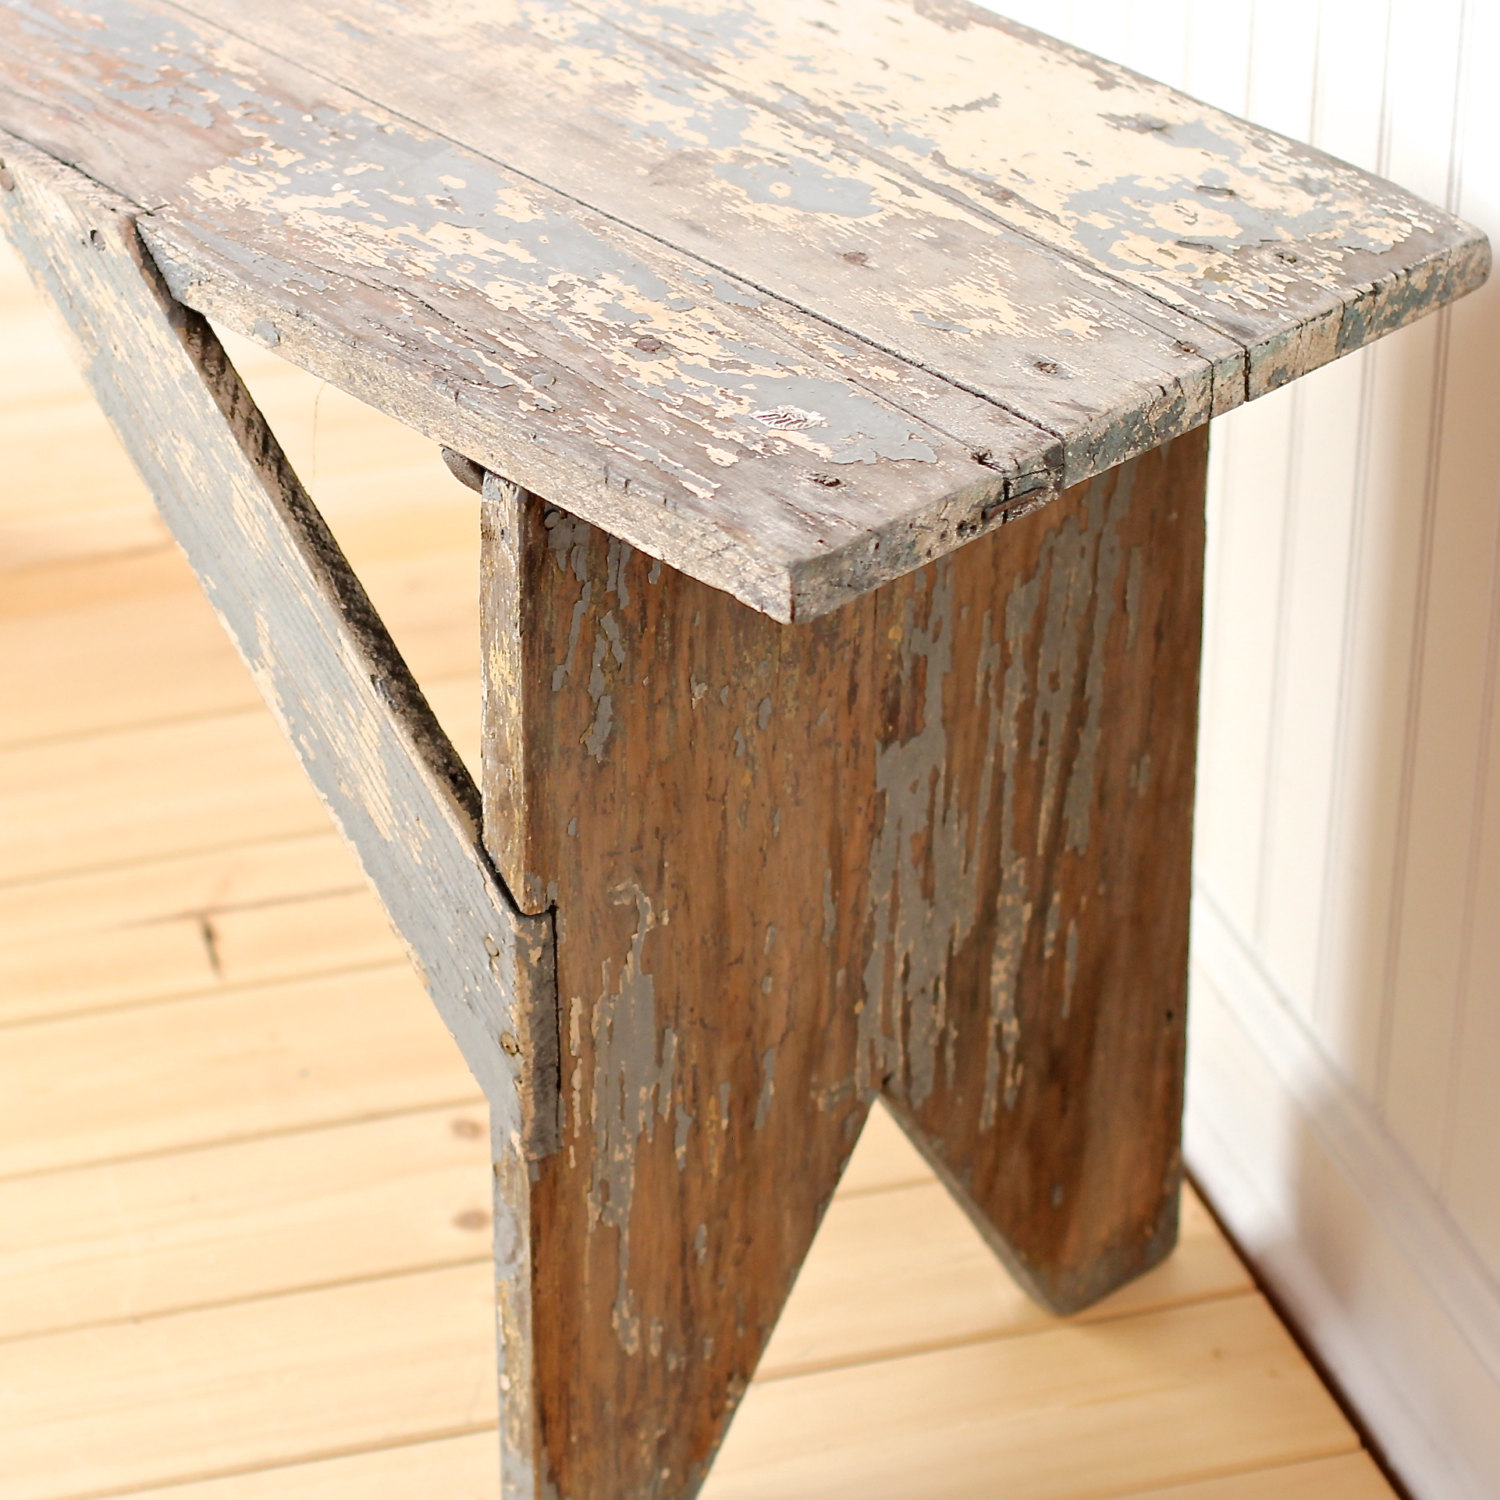 Genial Old Wooden Bench